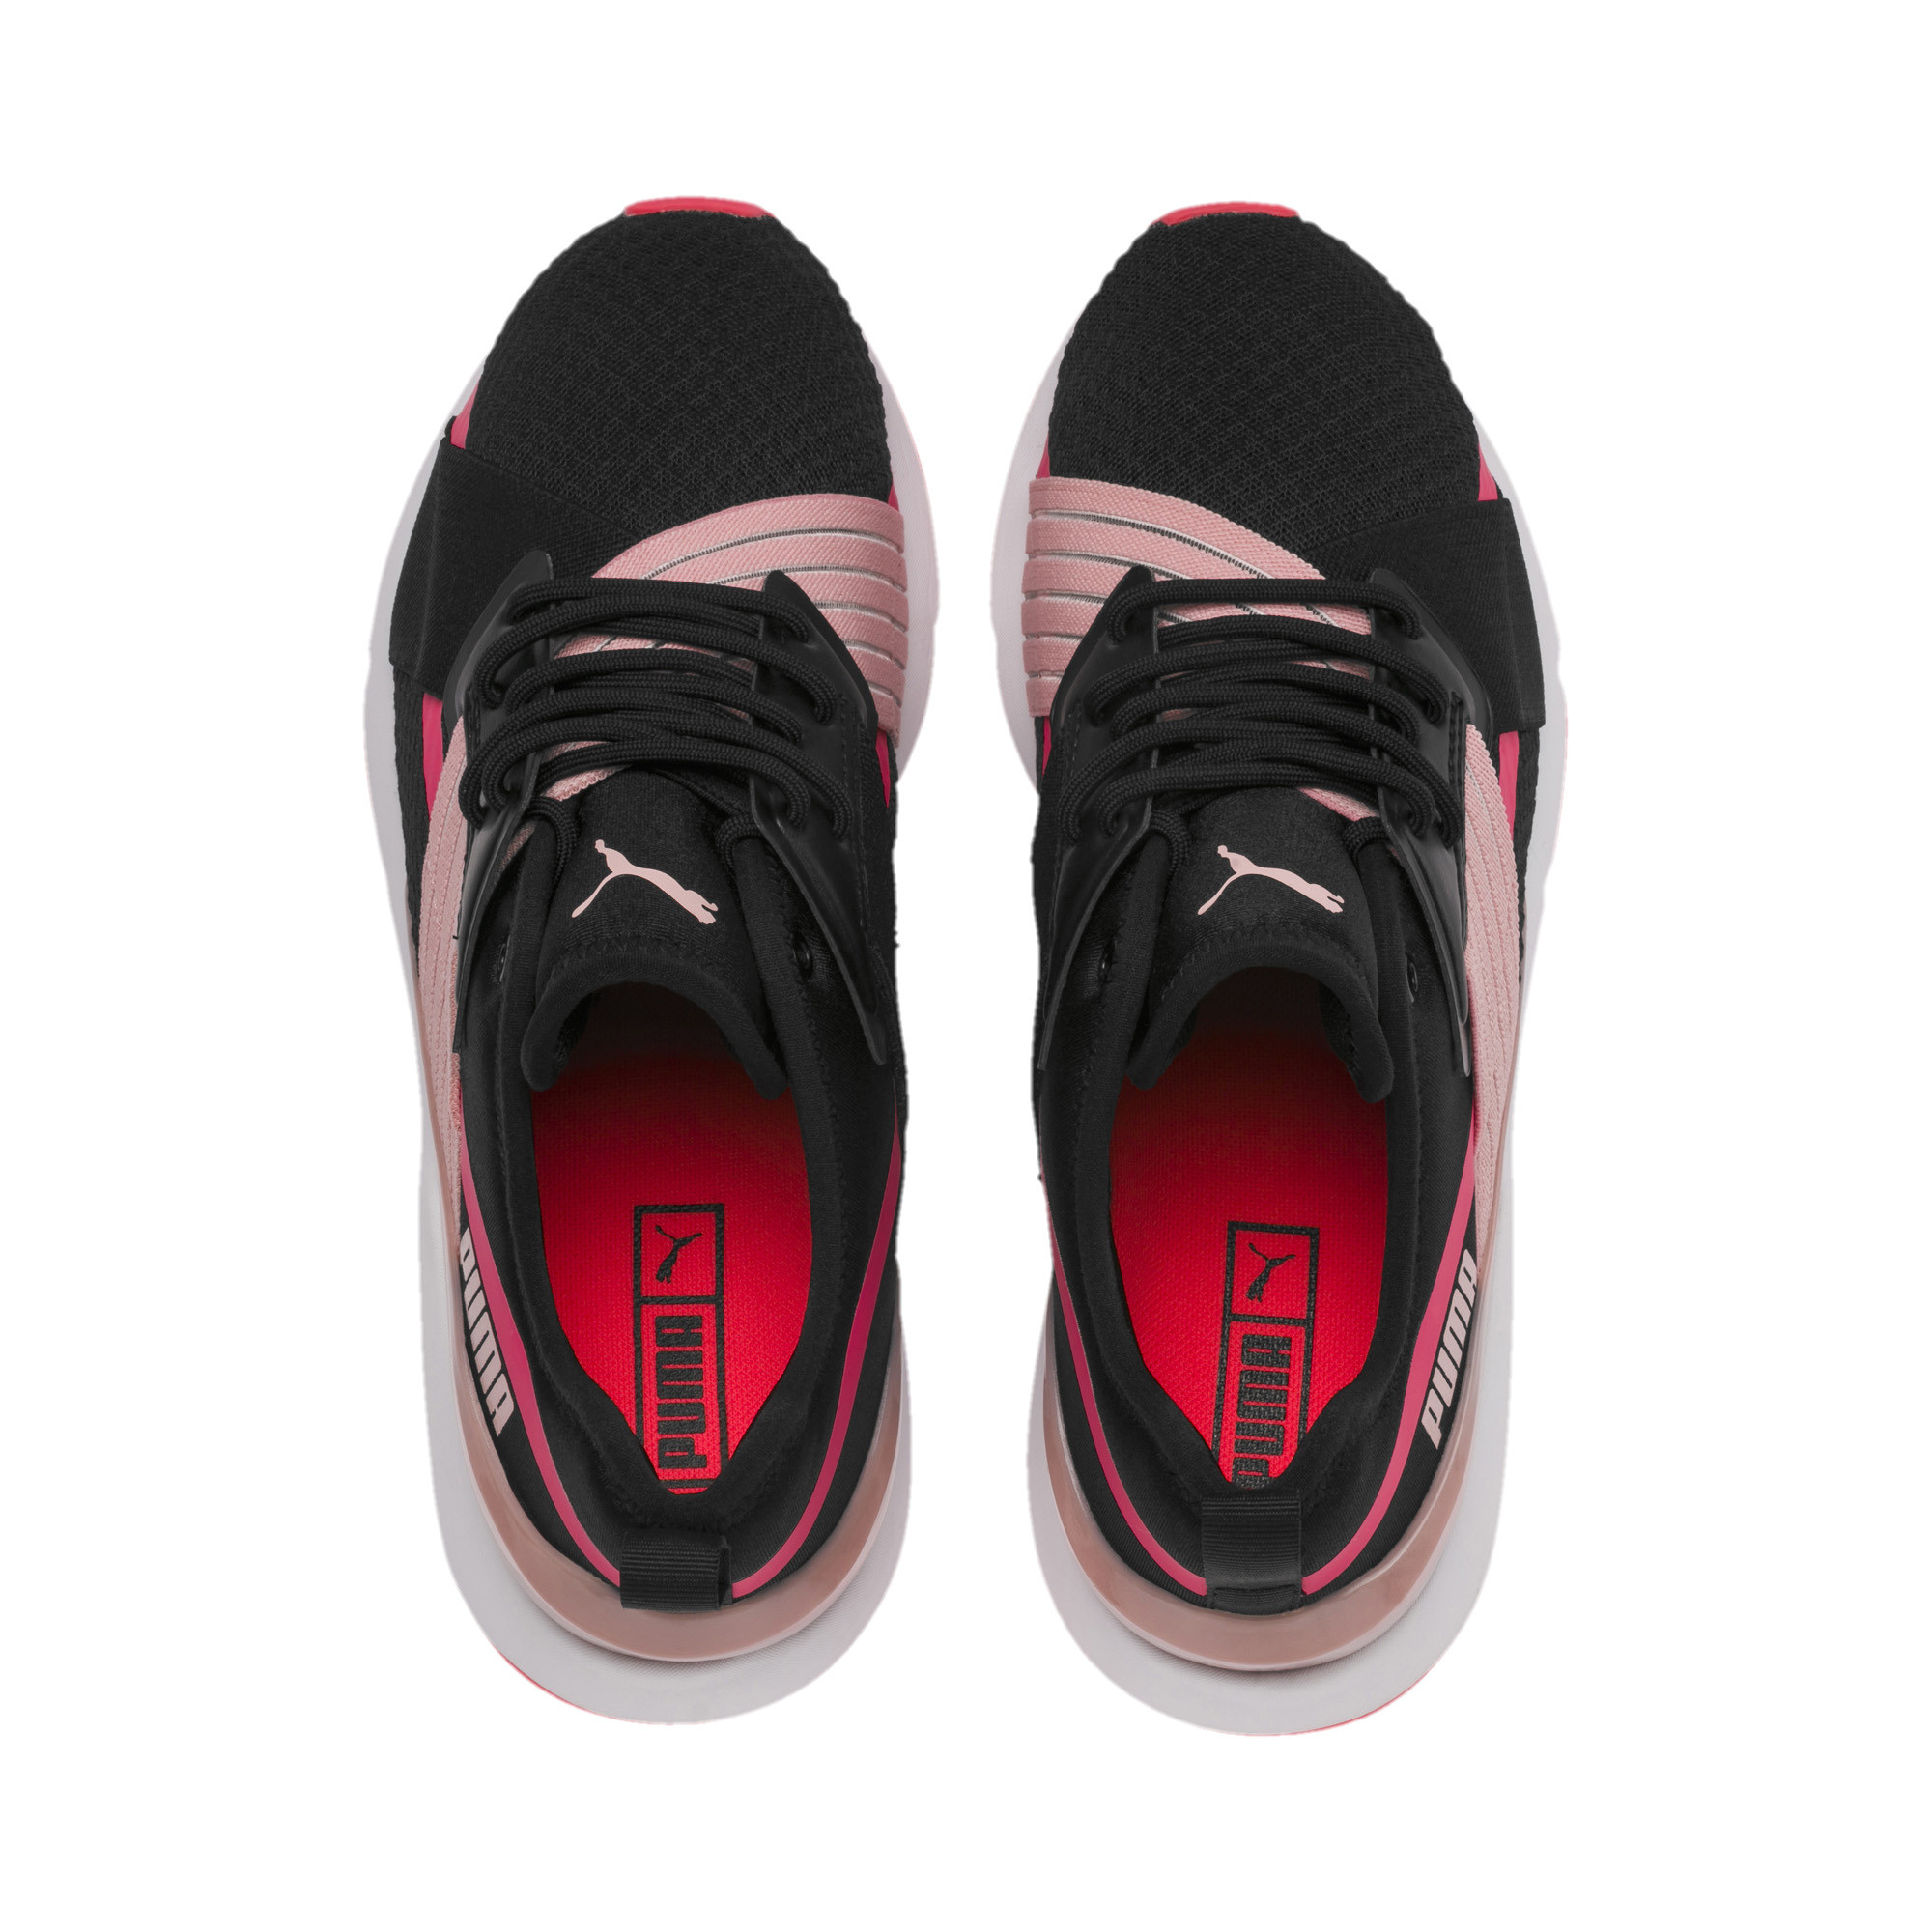 PUMA-Muse-X-2-Women-039-s-Sneakers-Women-Shoe-Evolution thumbnail 21